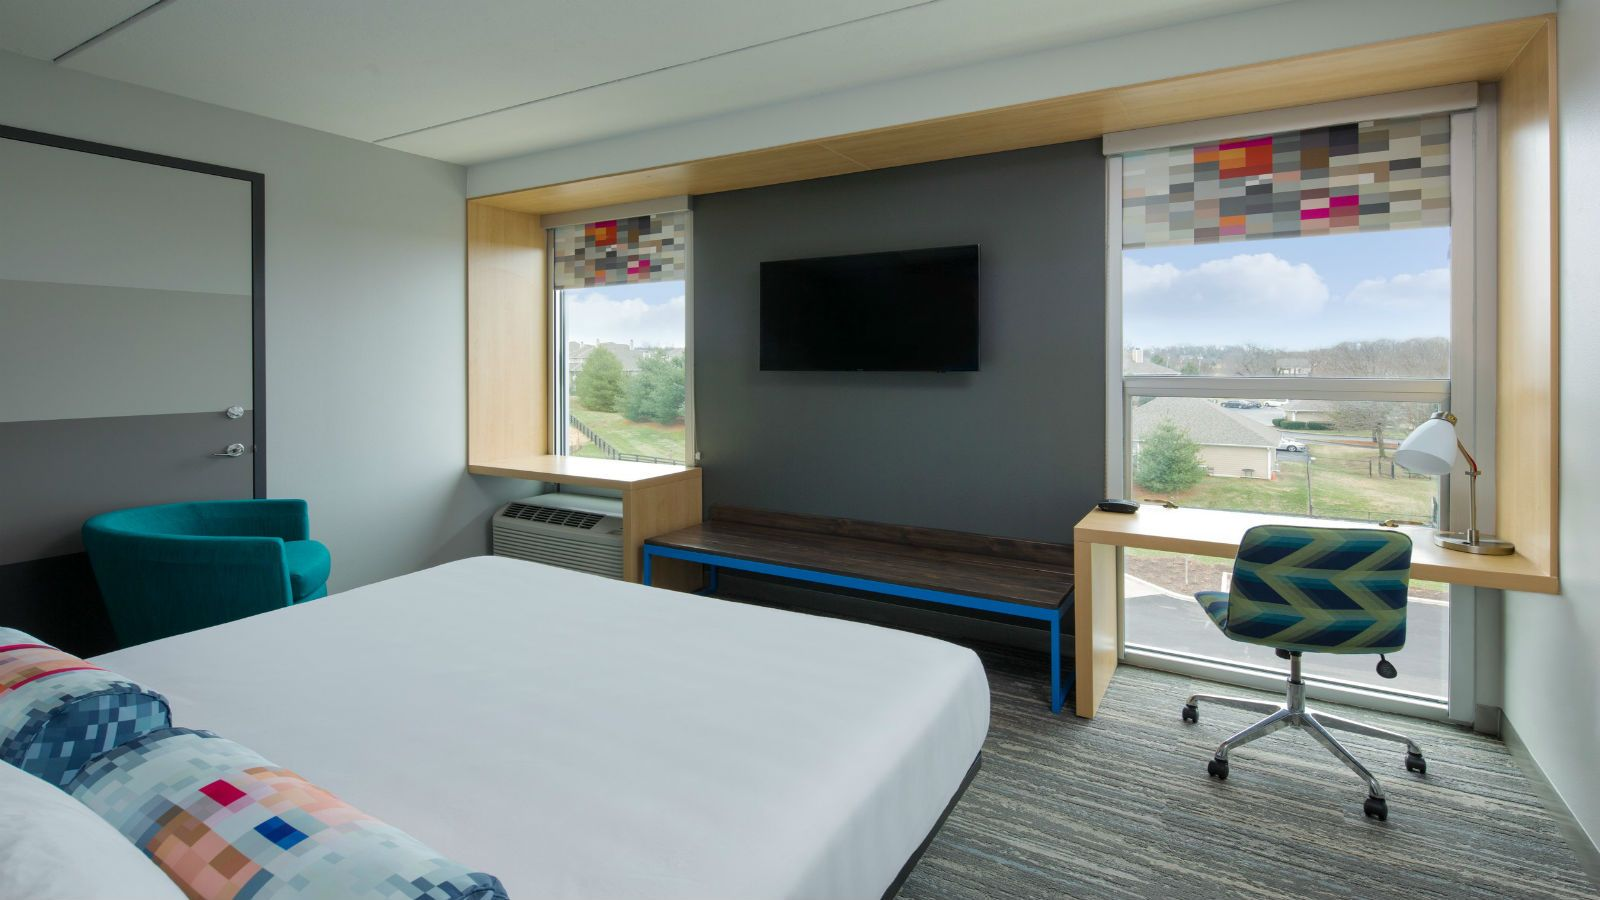 Louisville Accommodations - Accessible Room